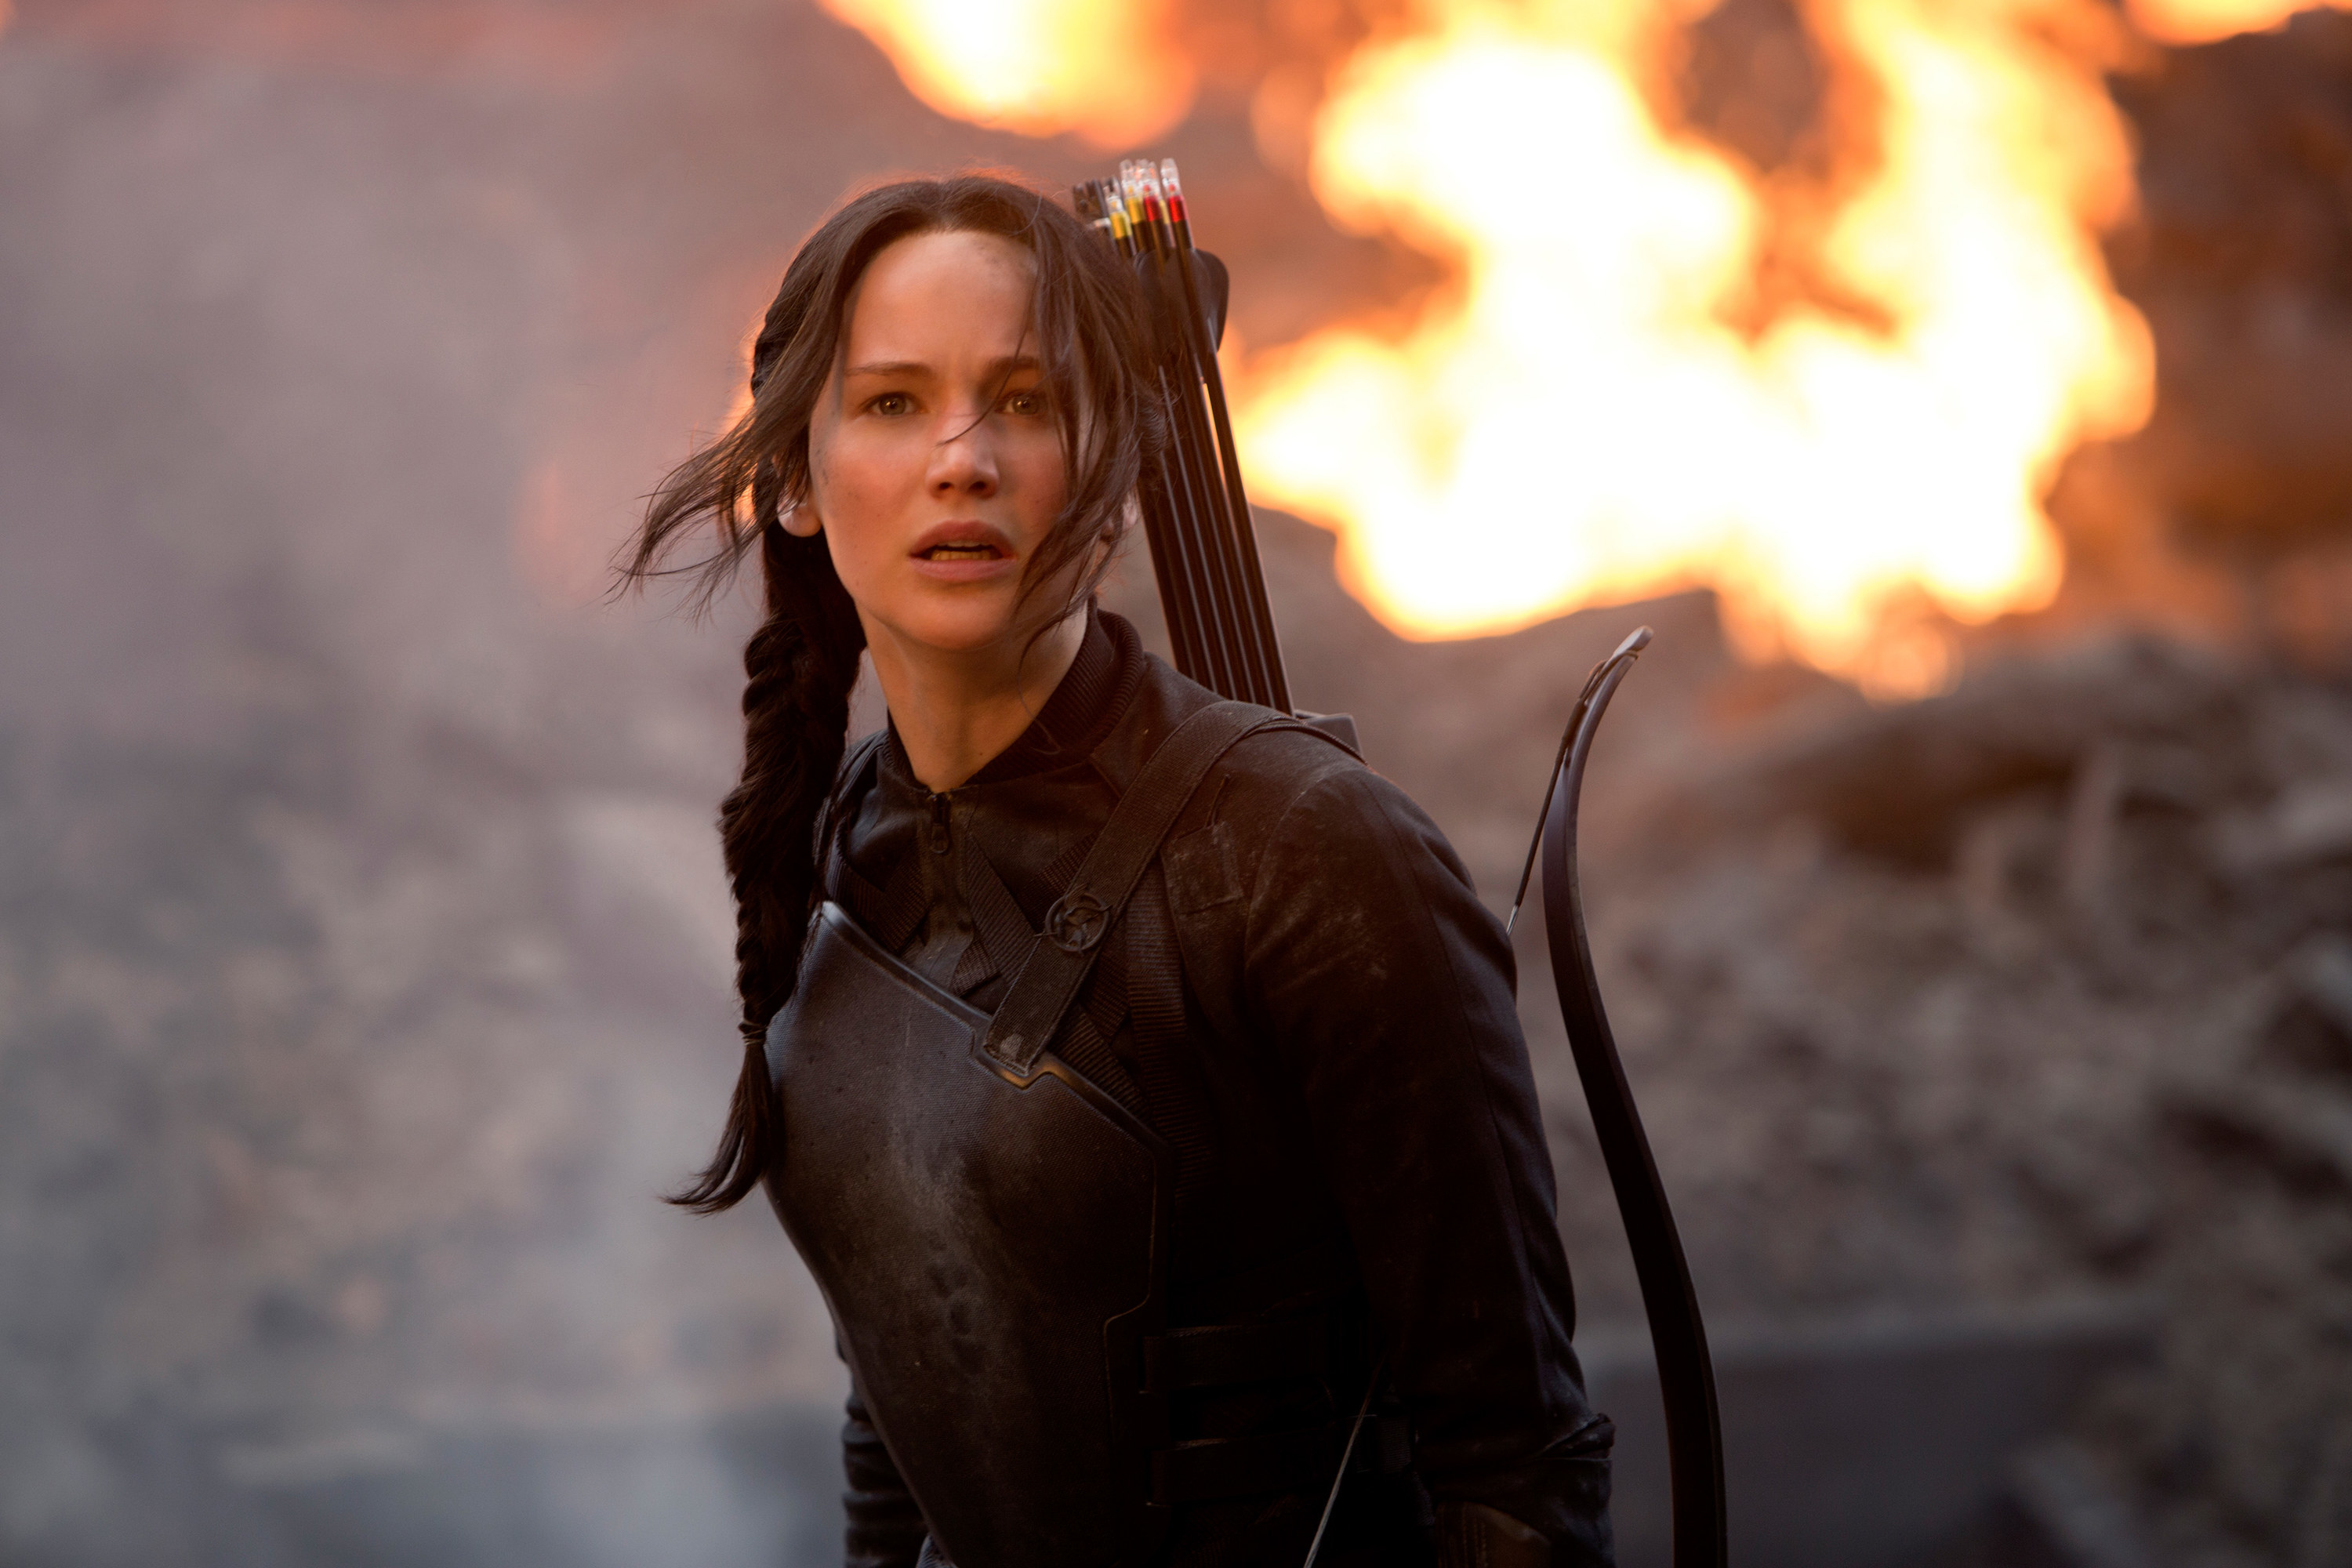 Katniss standing with an explosion behind her